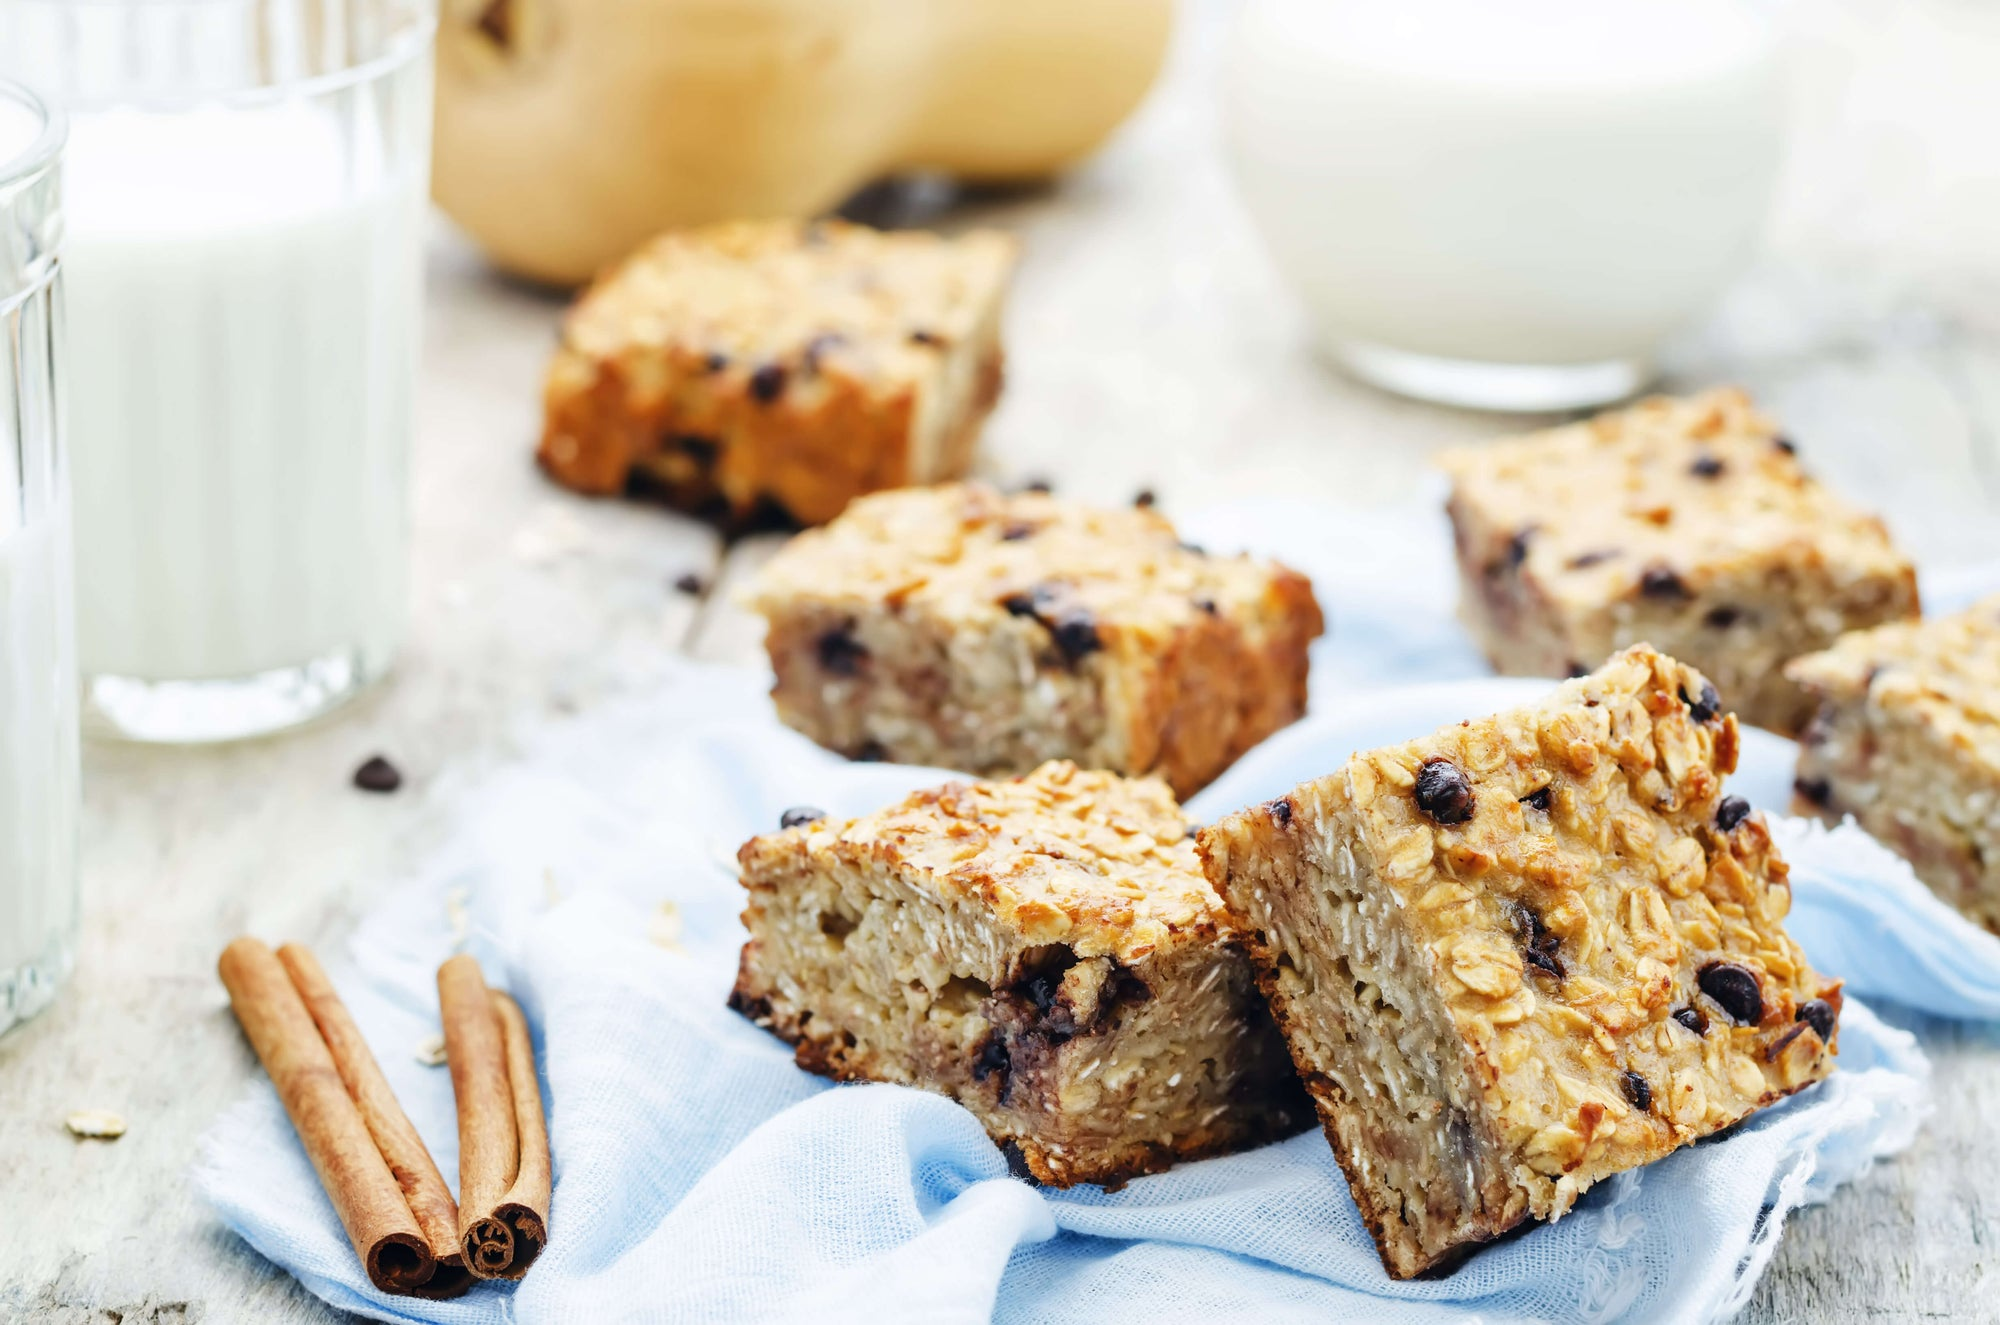 Baked Oatmeal Recipe with That's it. Fruit Bars